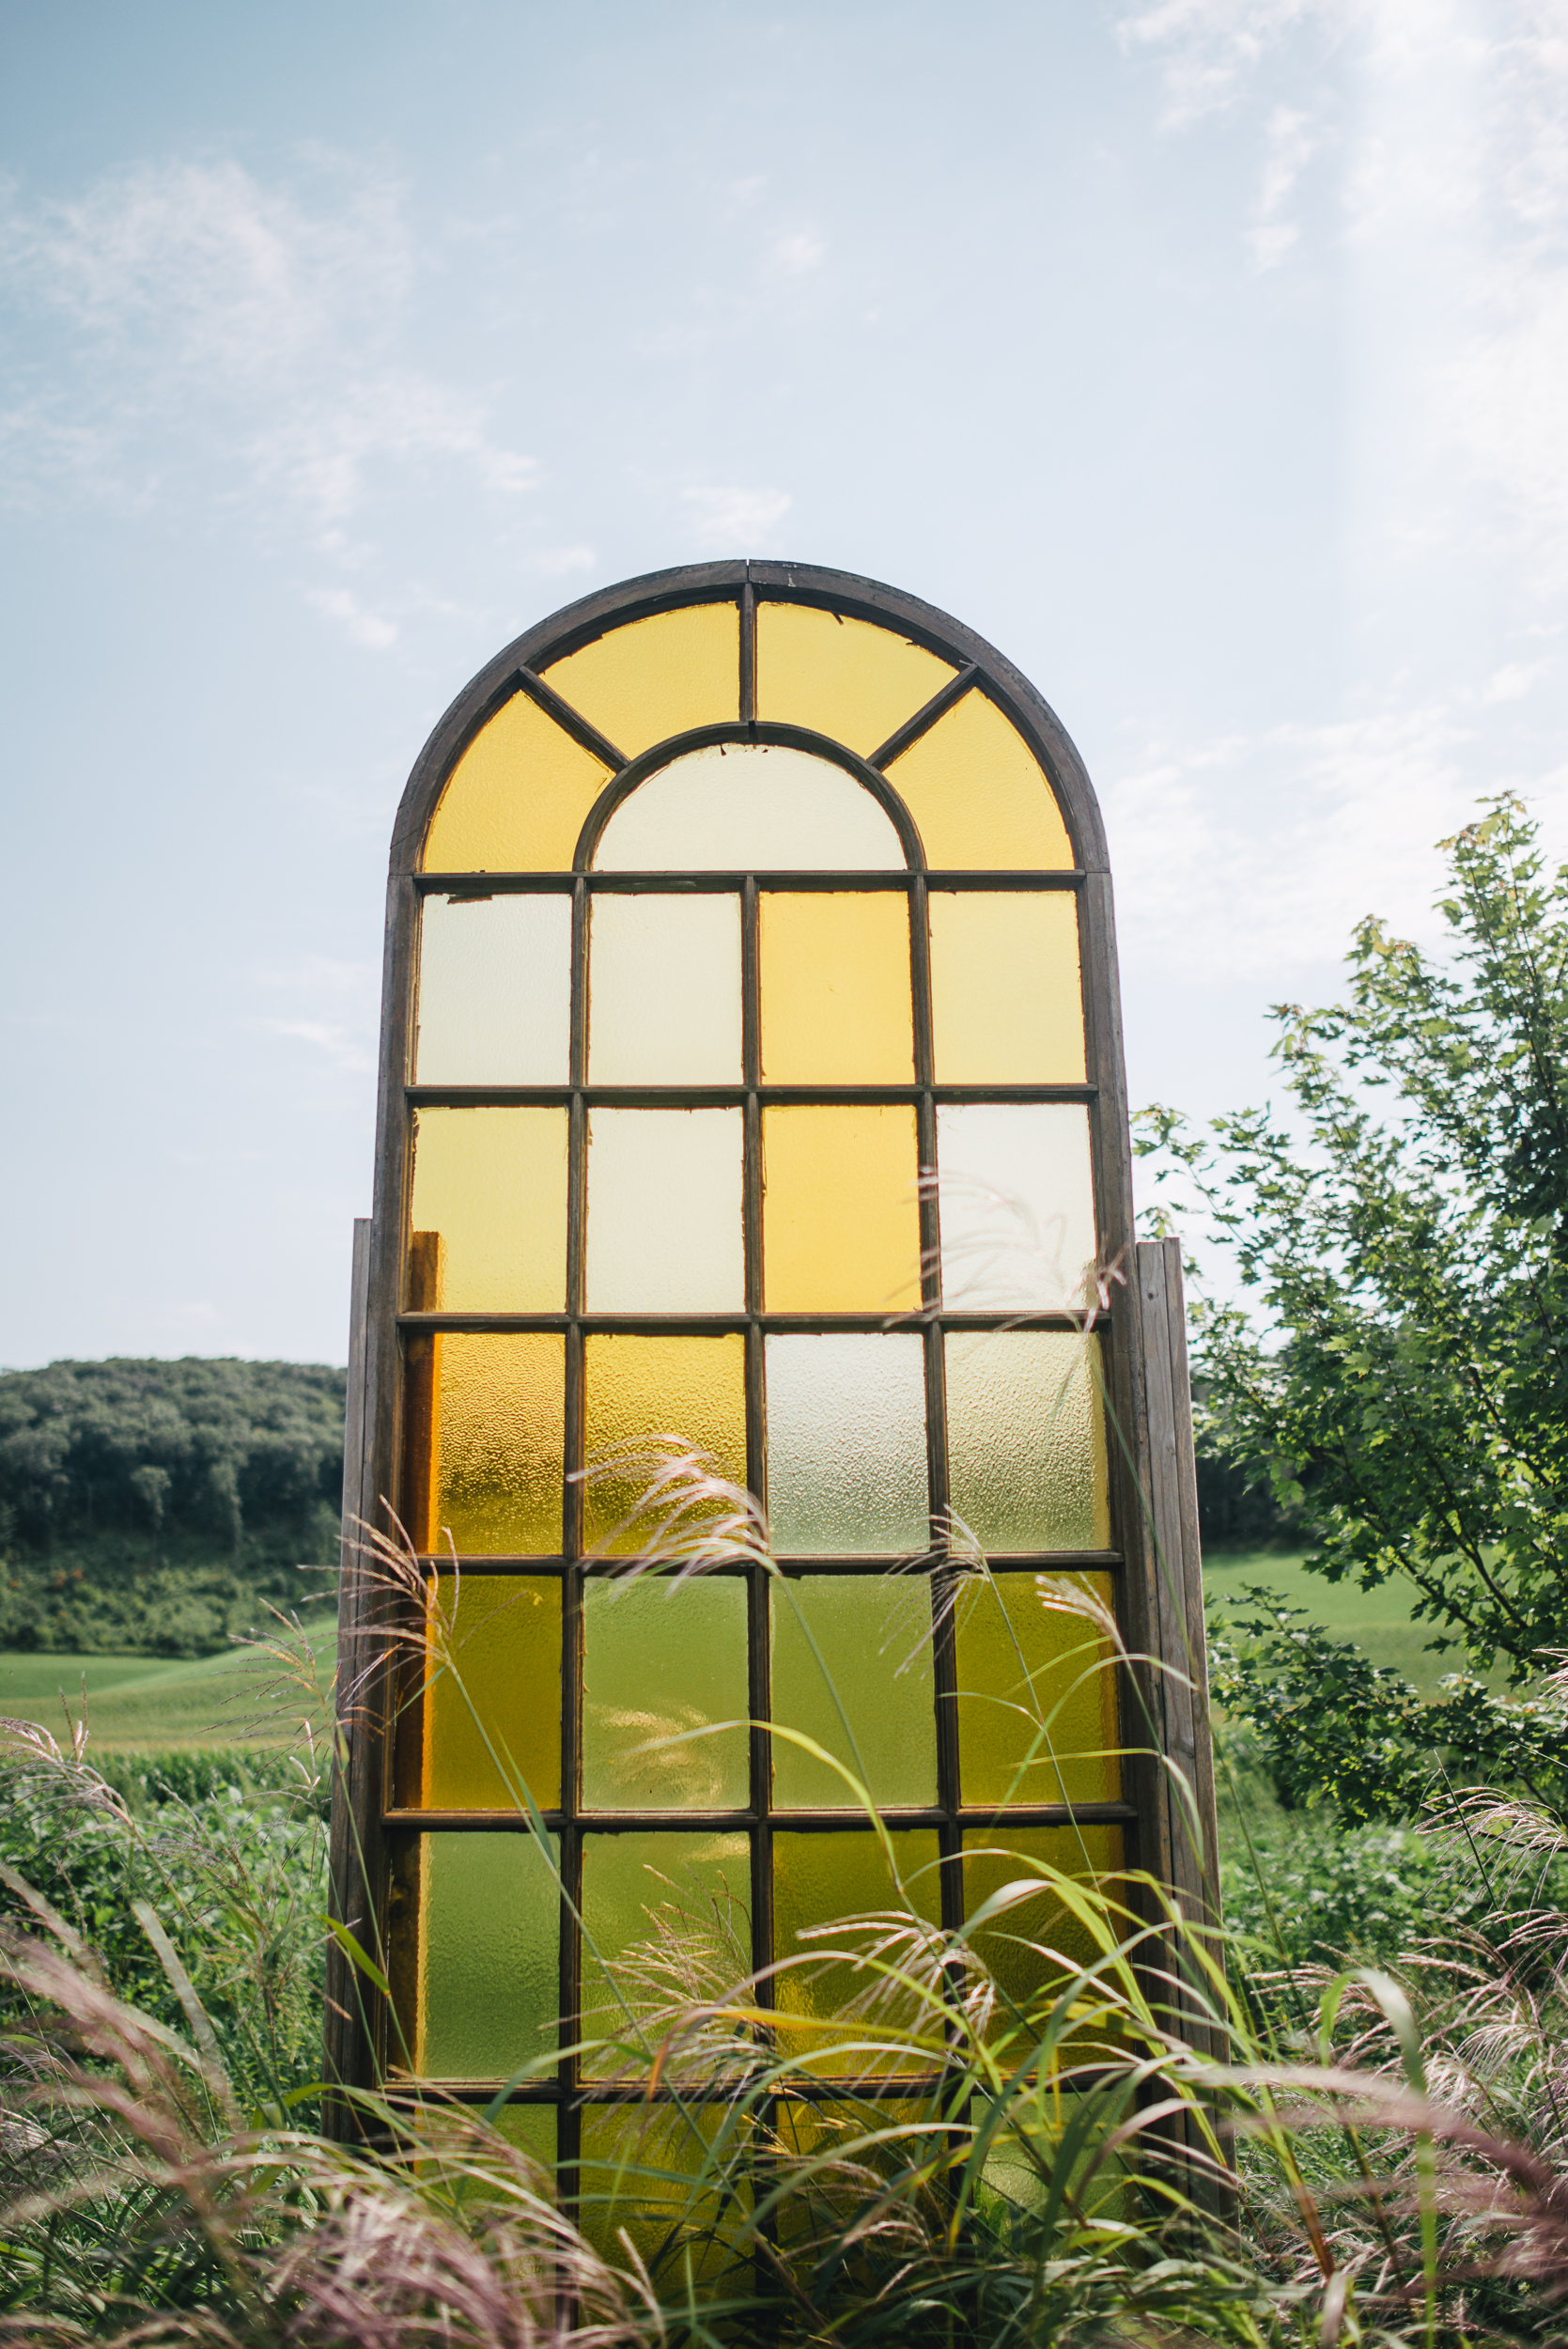 Stained glass window outdoors